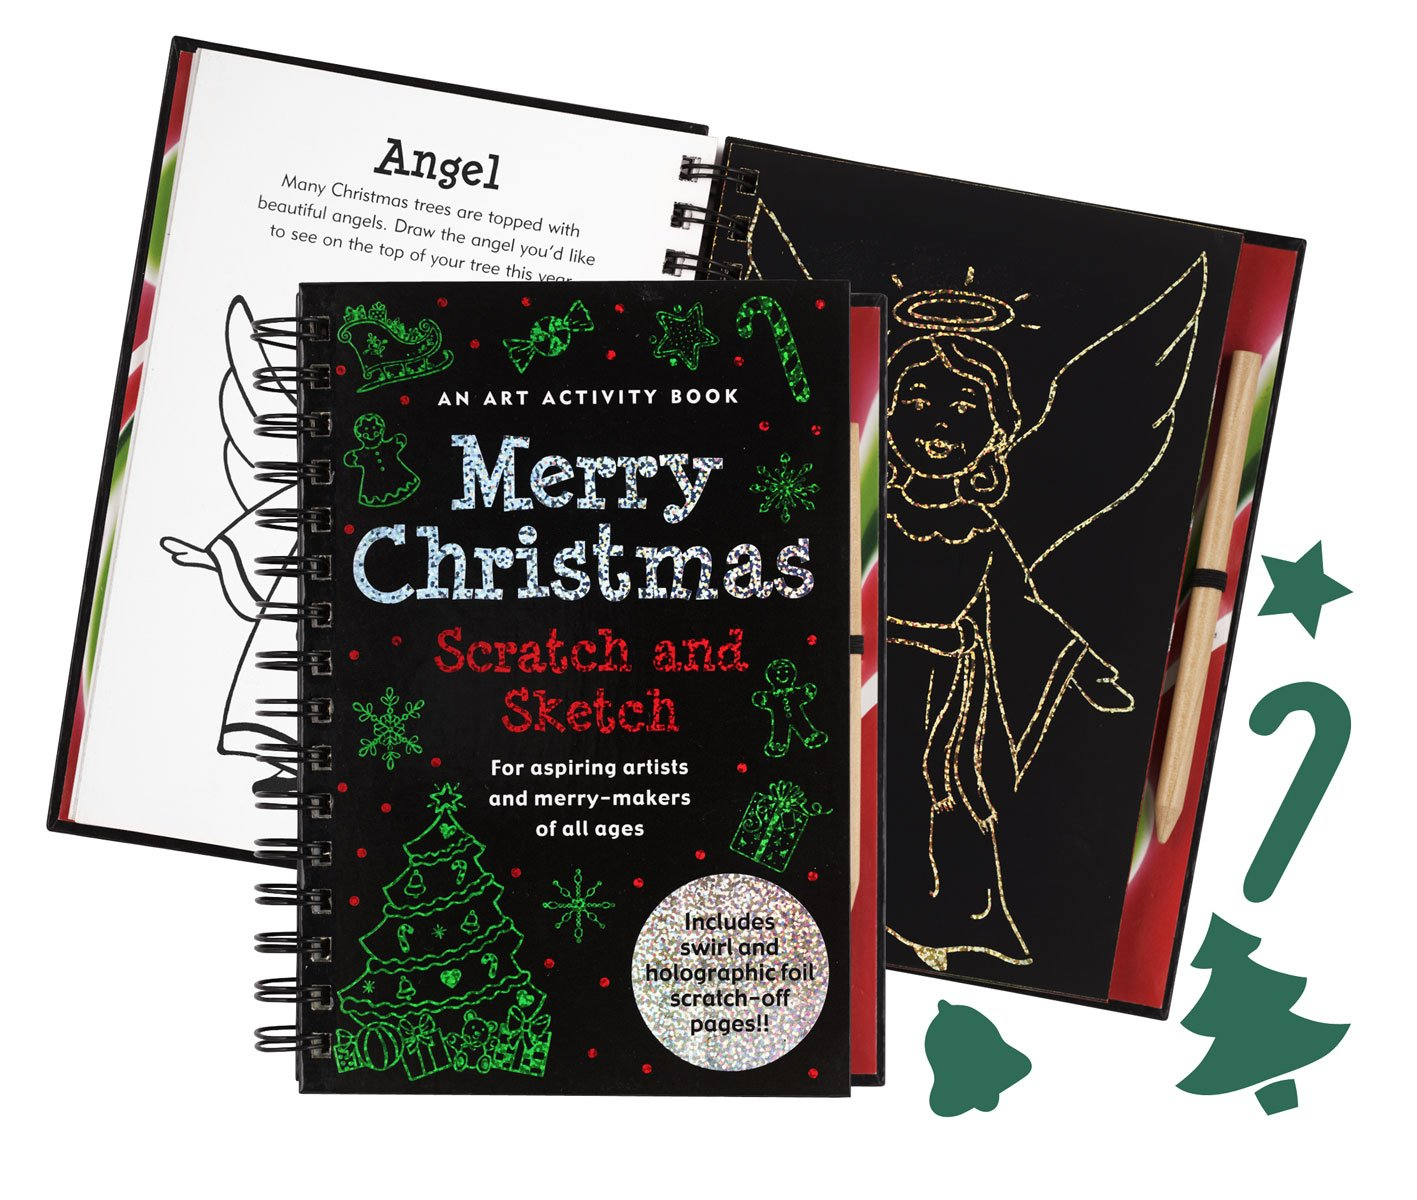 Merry Christmas Scratch and Sketch: An Art Activity Book for Aspiring  Artists and Merry-Makers of All Ages (Scratch & Sketch): Heather Zschock:  ...